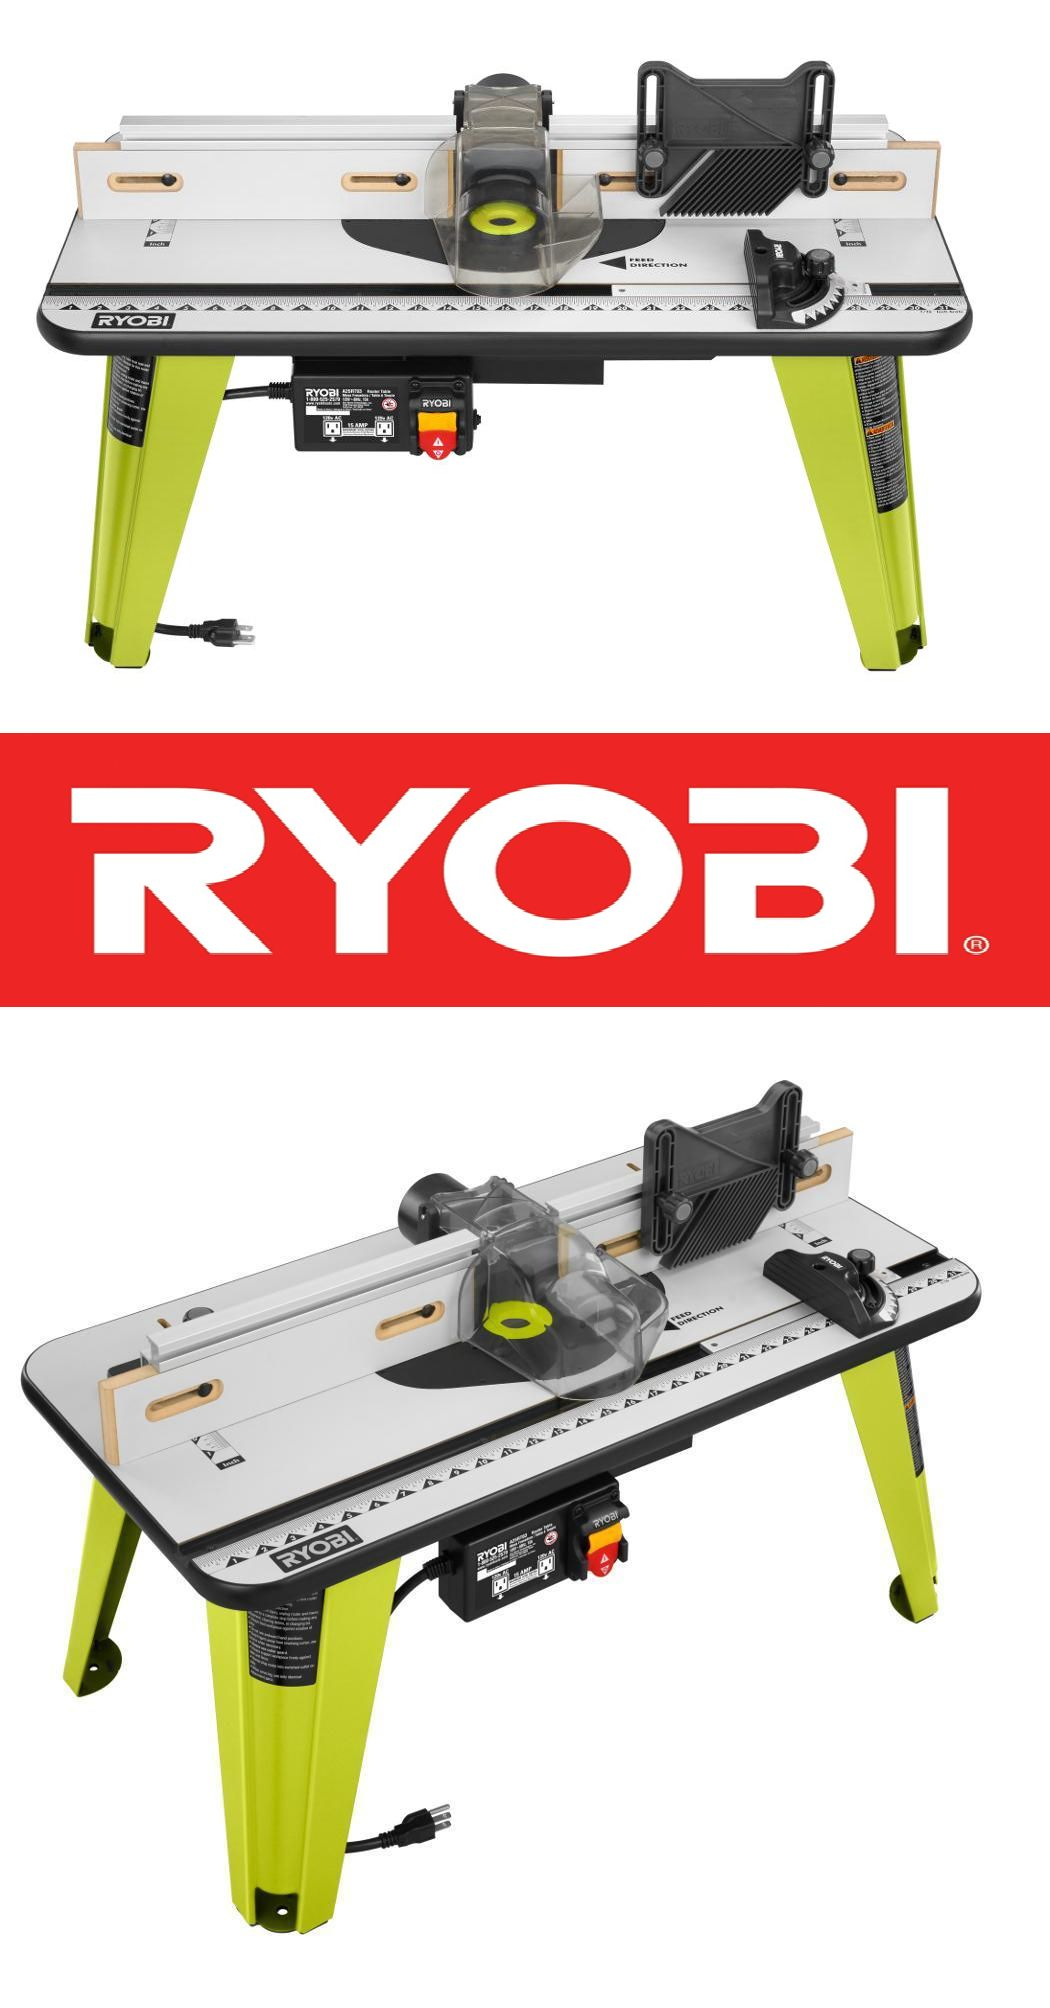 Router Tables 75680 New Ryobi Universal Router Table Wood Working